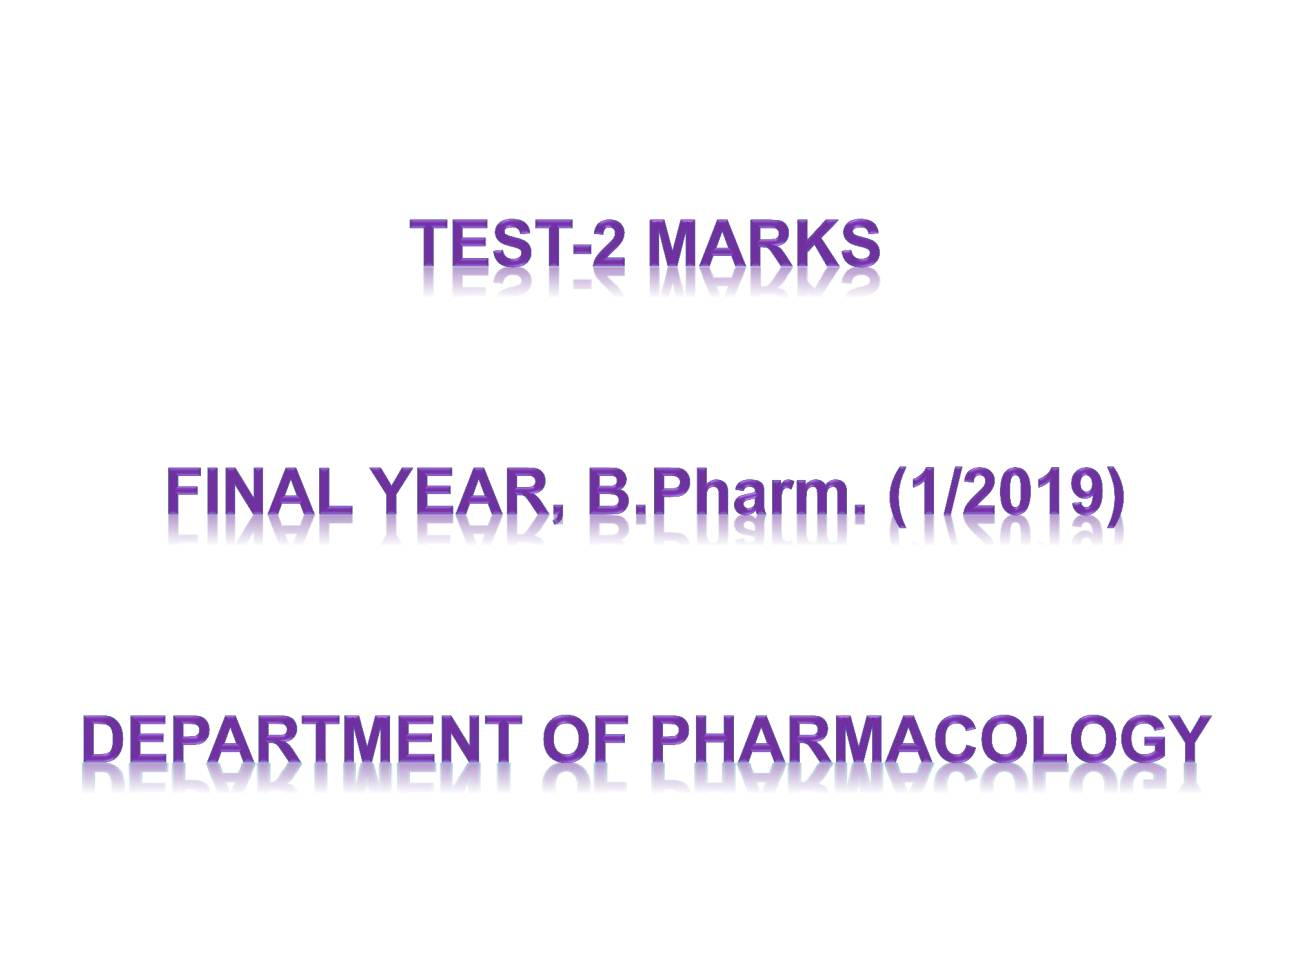 Test-2 Marks of Final Year, B.Pharm. (1/2019)